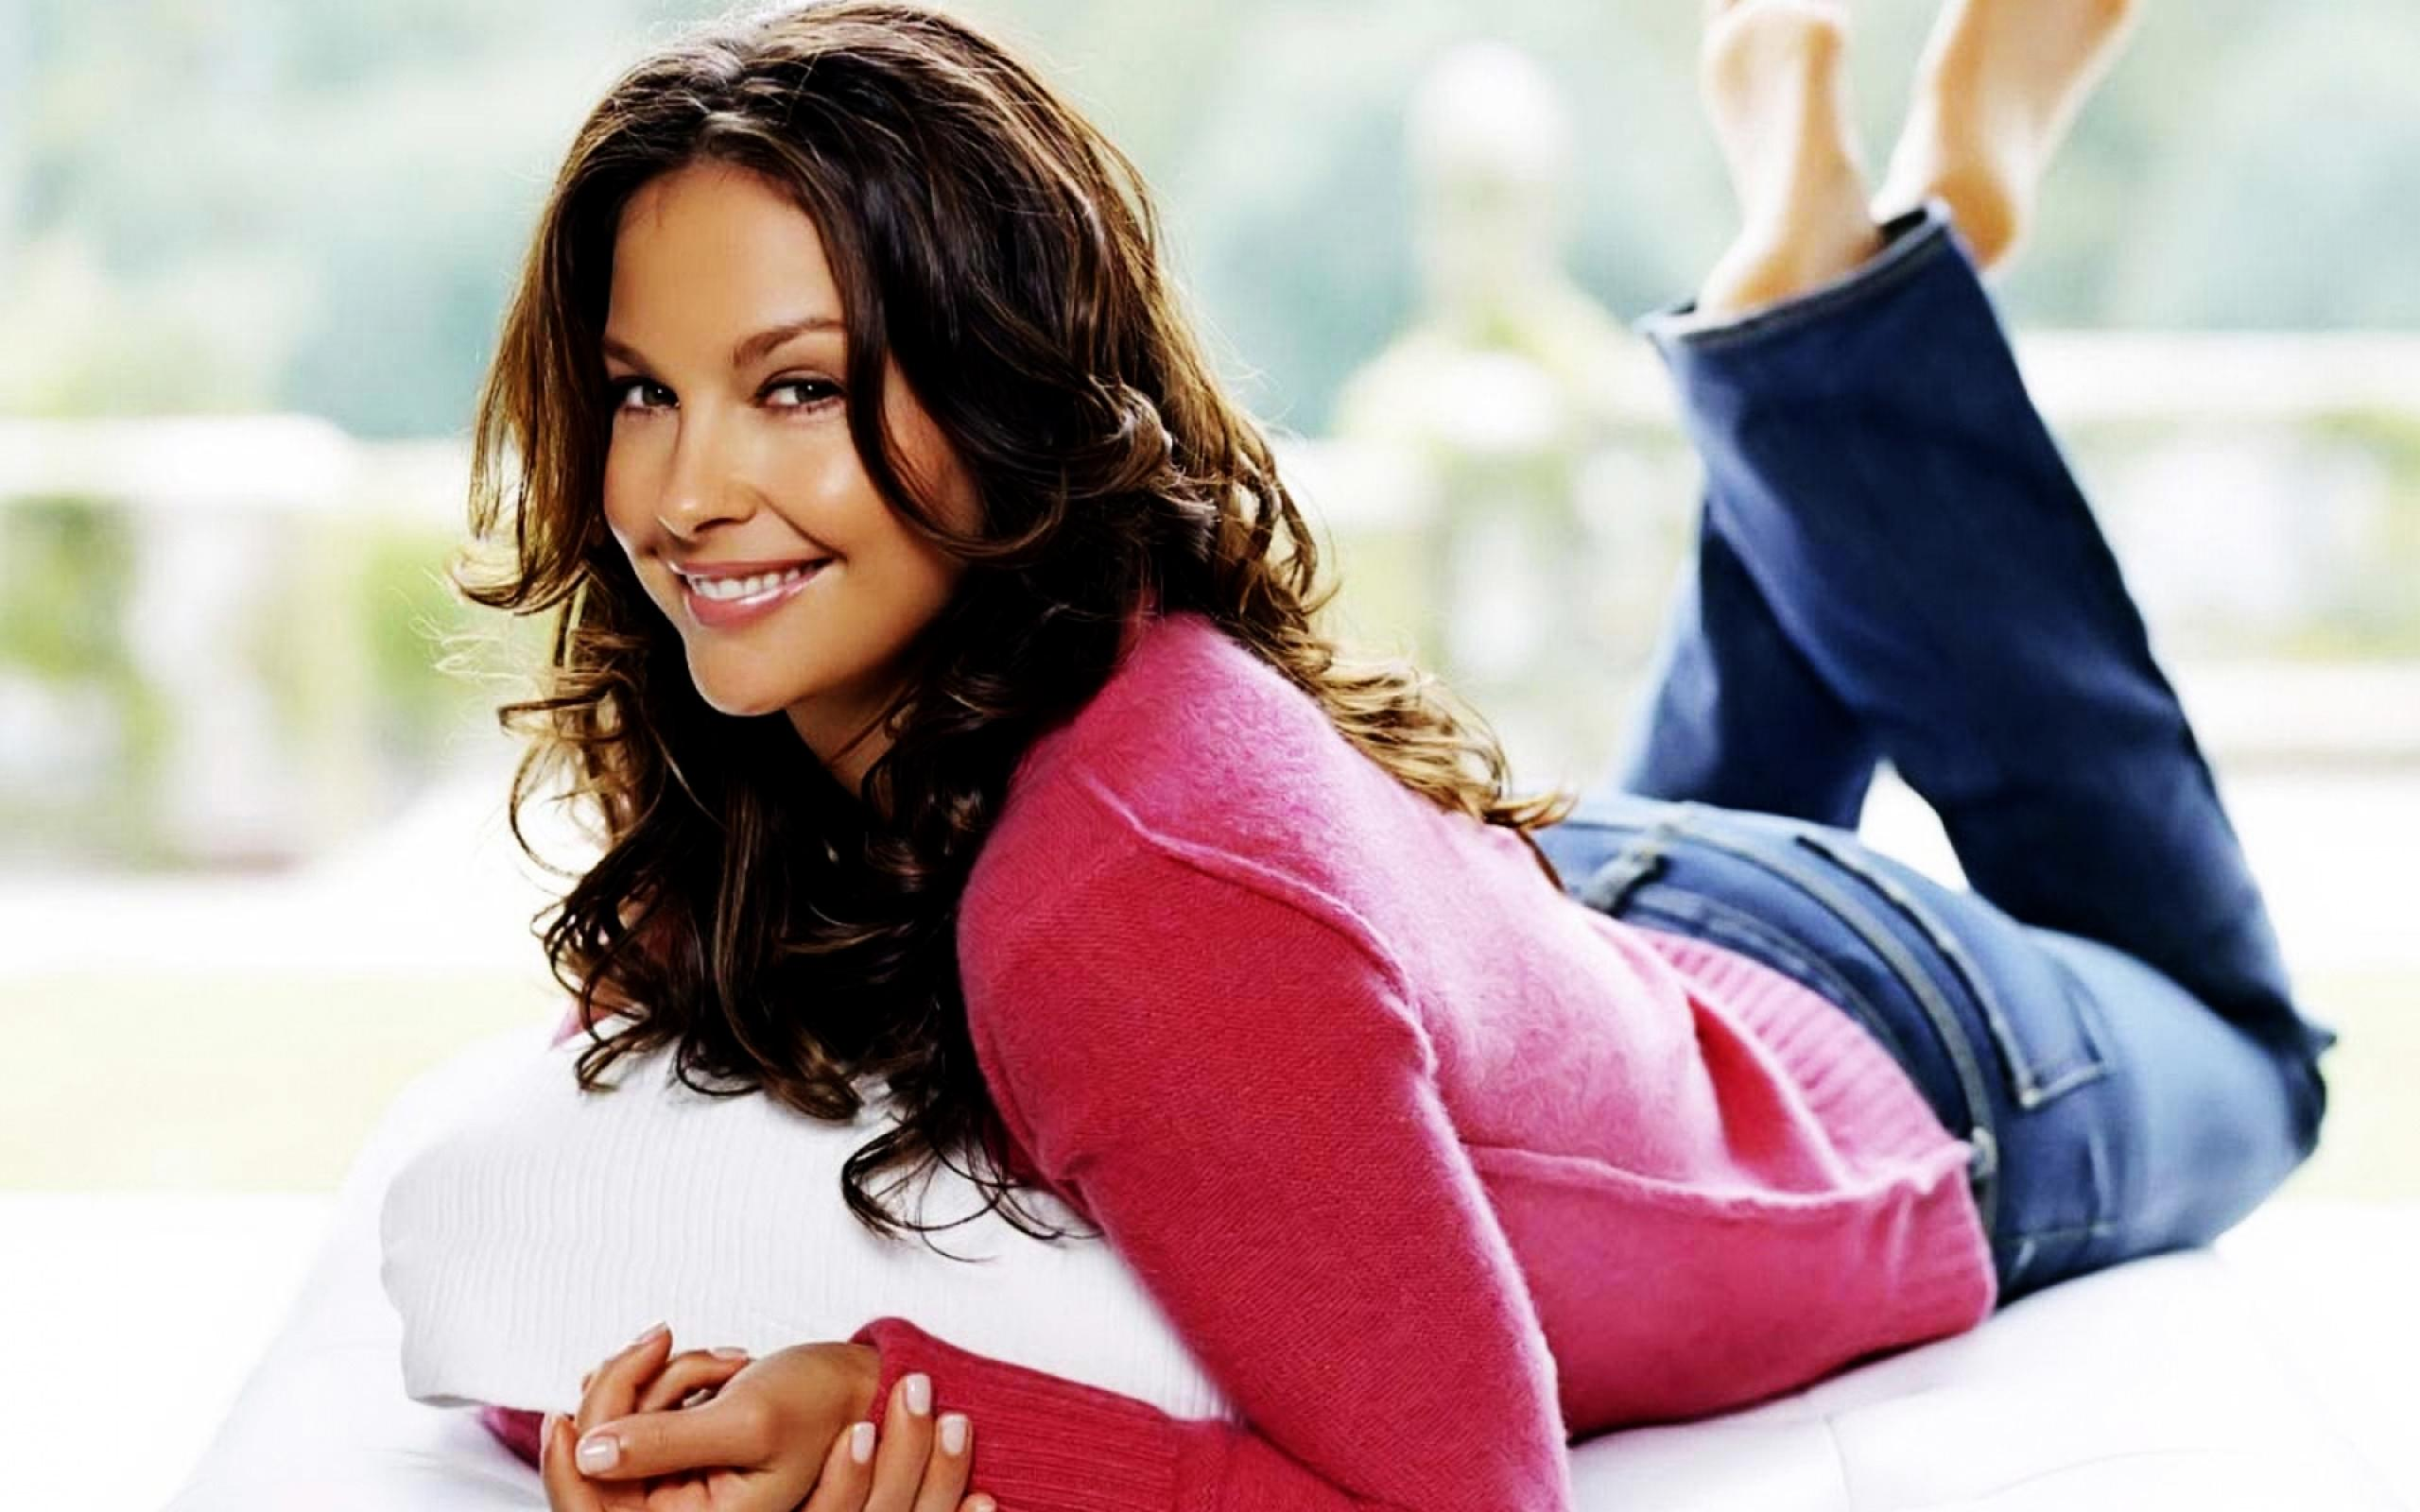 ashley-judd-wallpaper-3